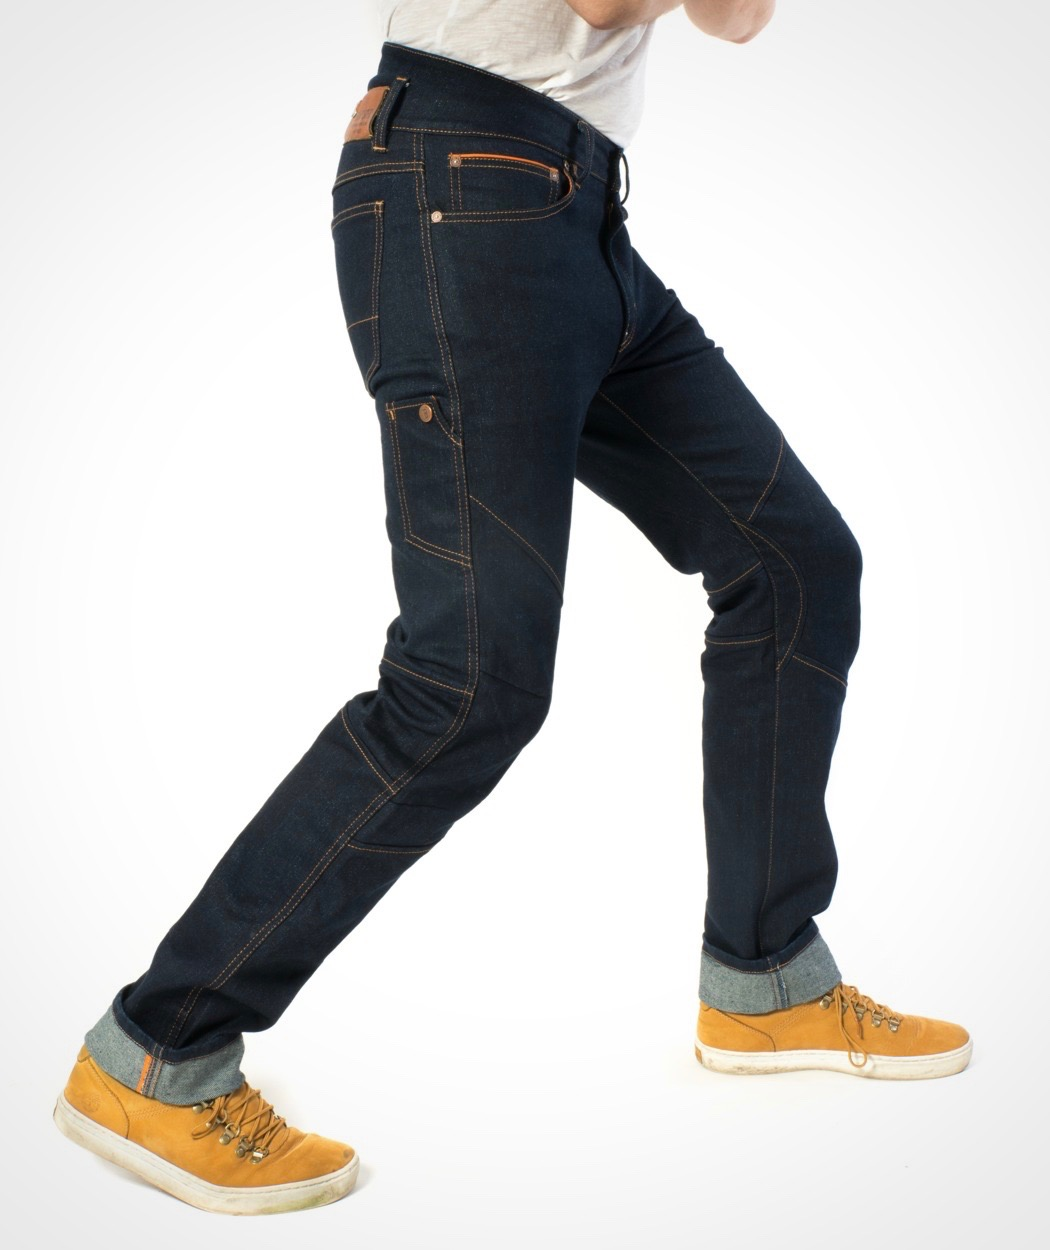 bolidster_jeans_ridester